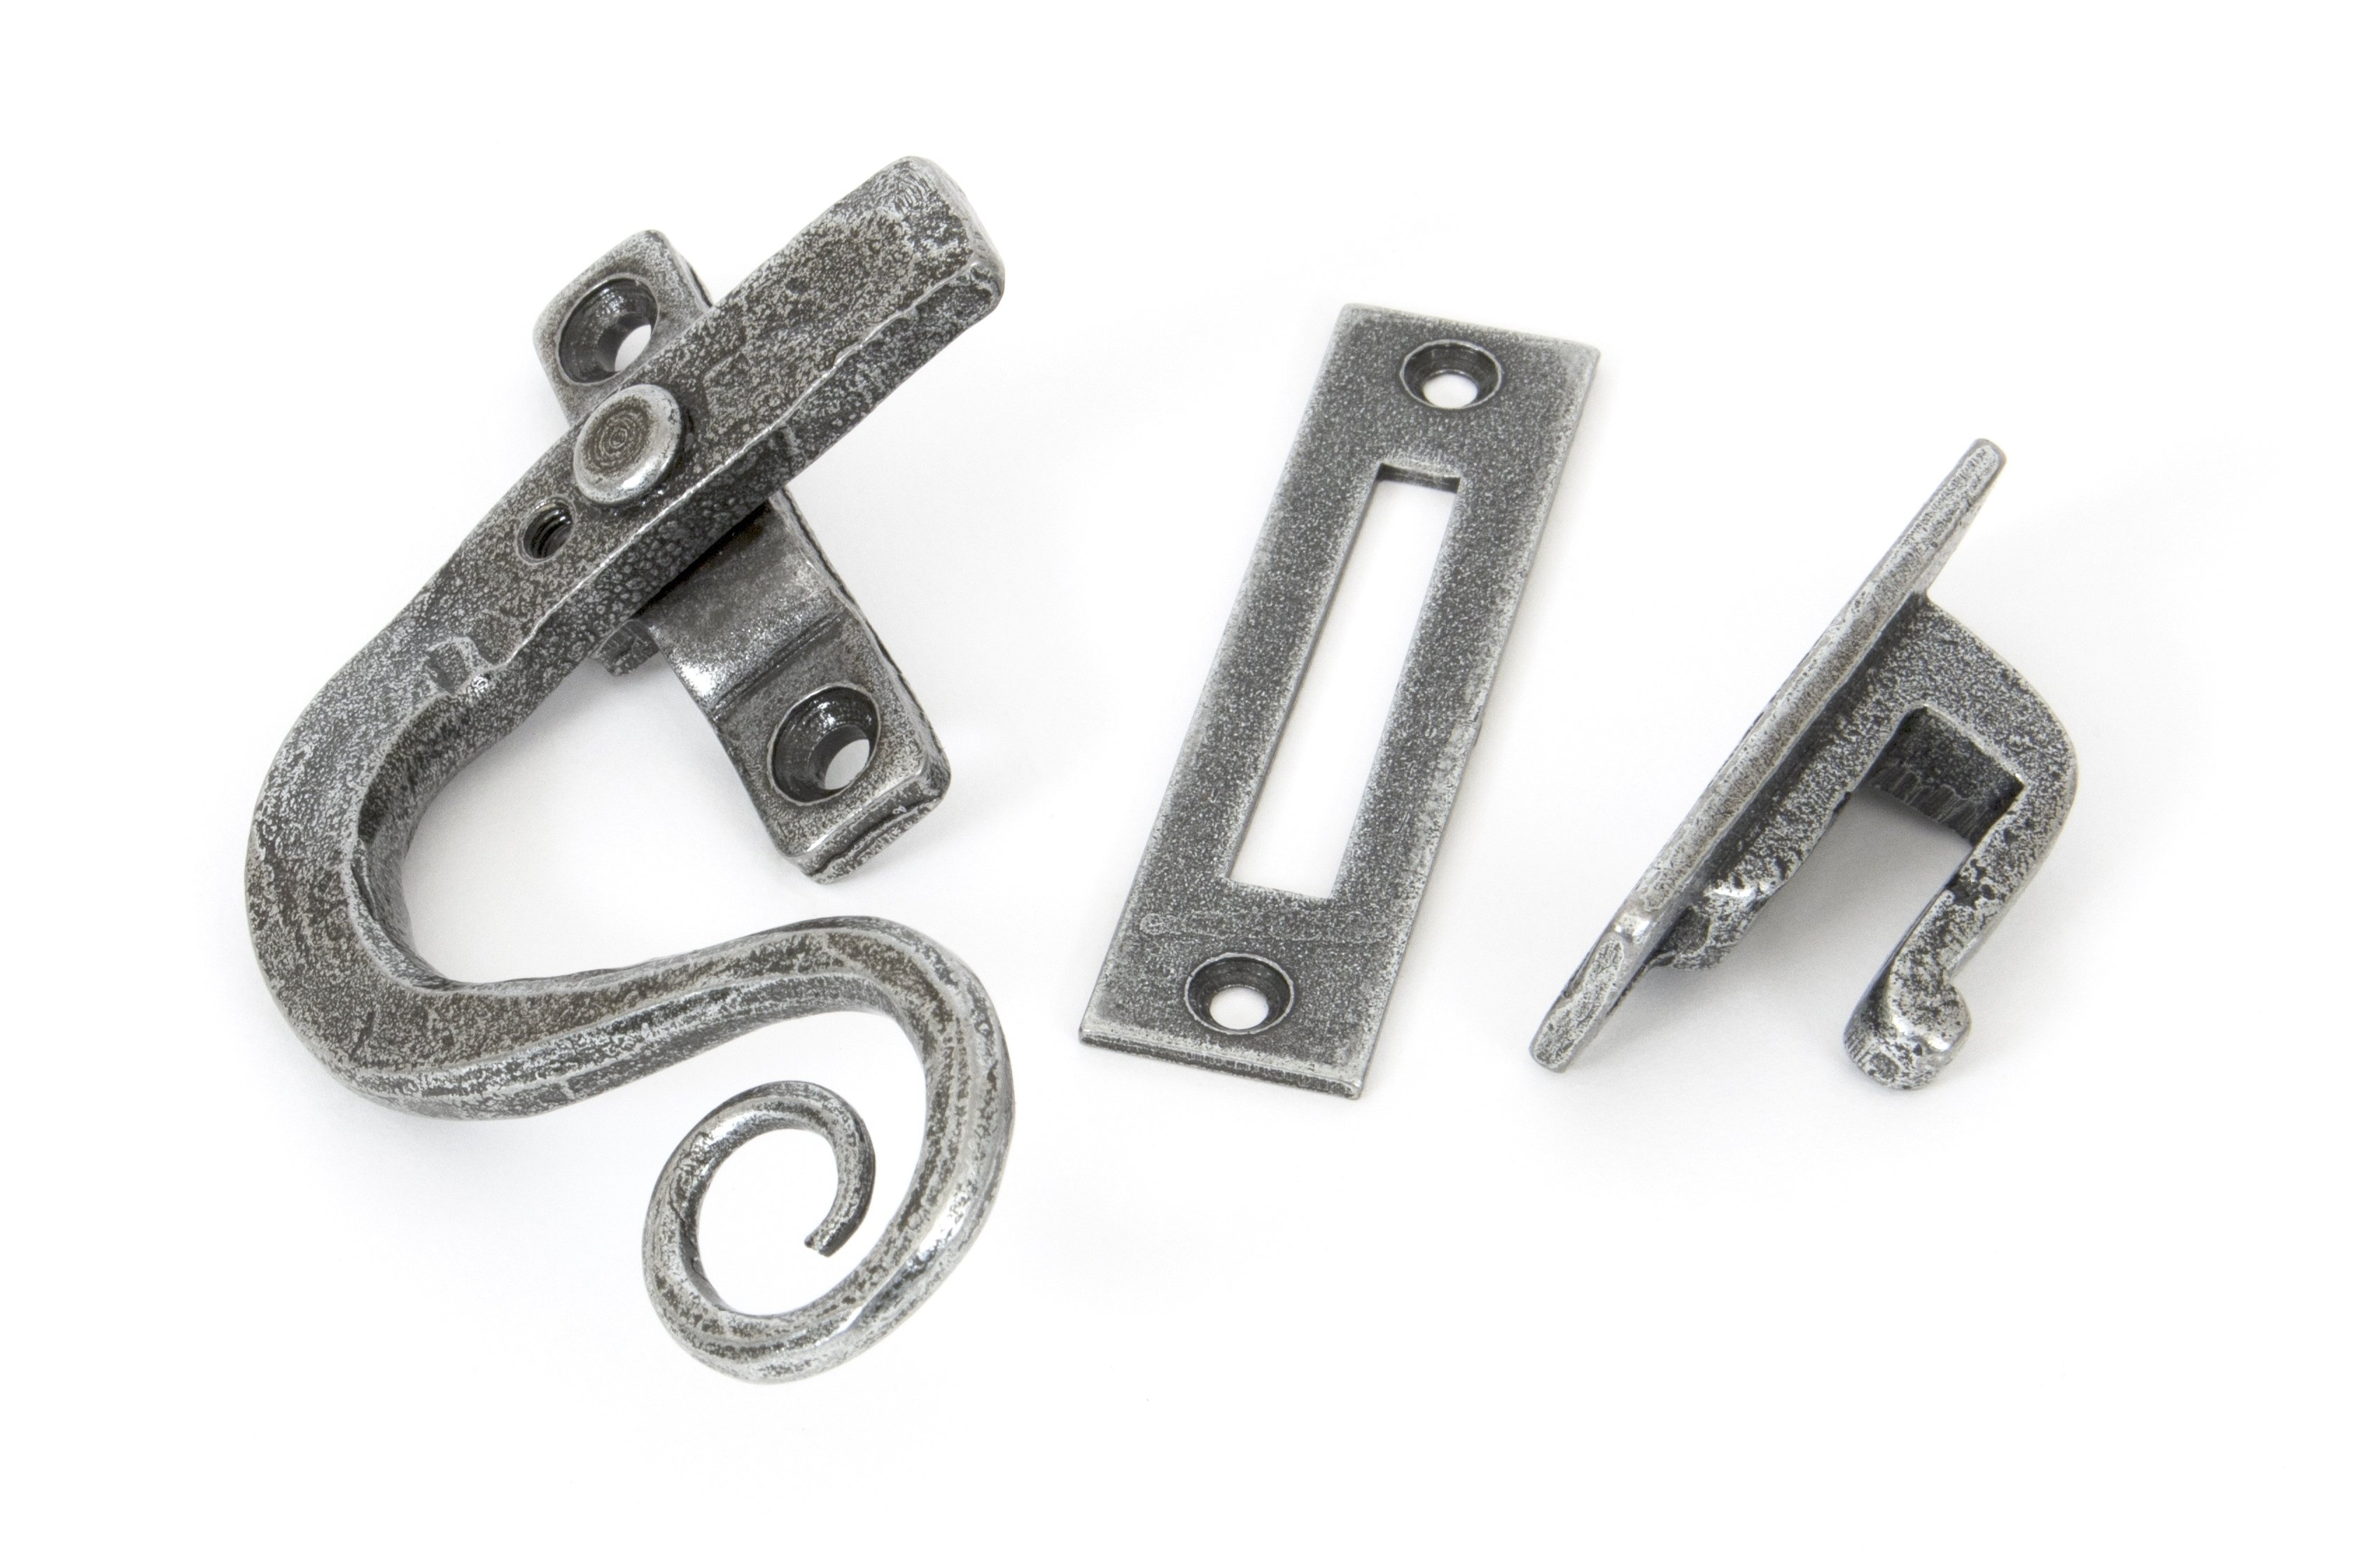 Pewter Monkeytail Fastener LH - Locking